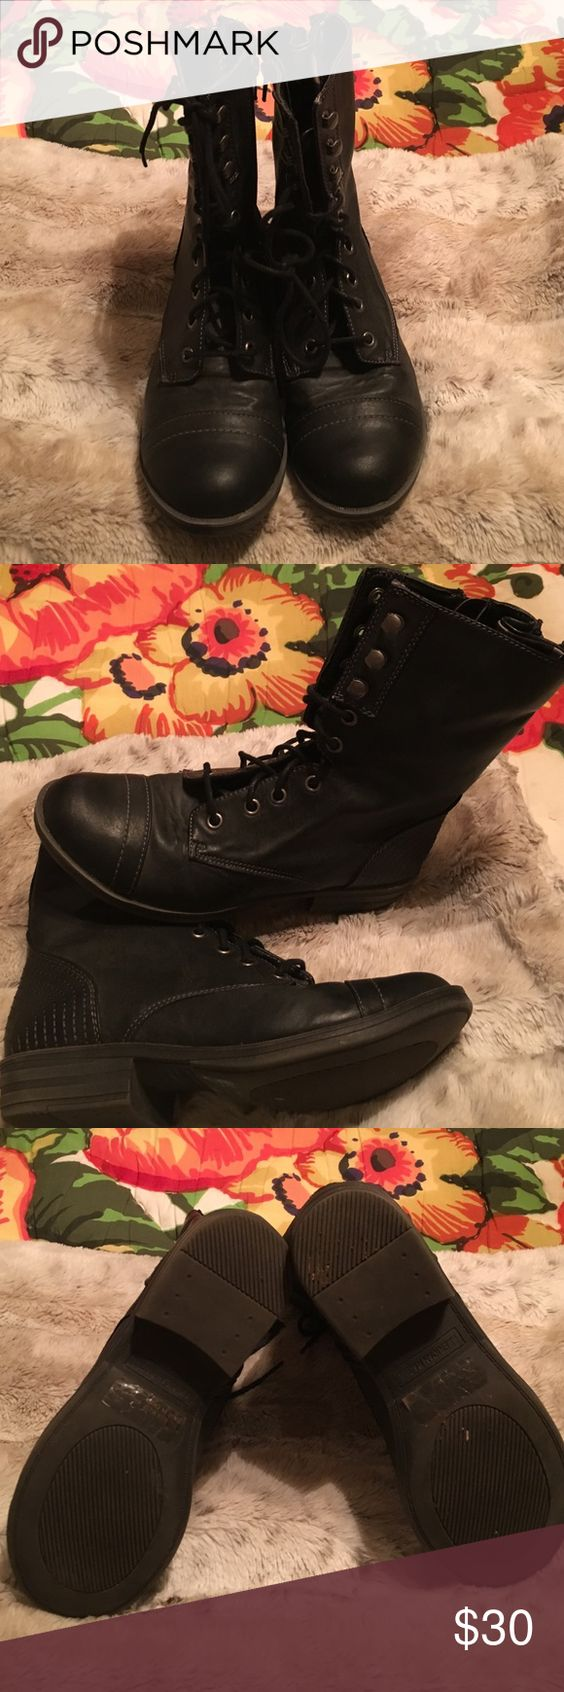 American Rag Deputy boots American Rag Deputy boots, size 7.5, excellent condition worn only a few times. American Rag Shoes Heeled Boots